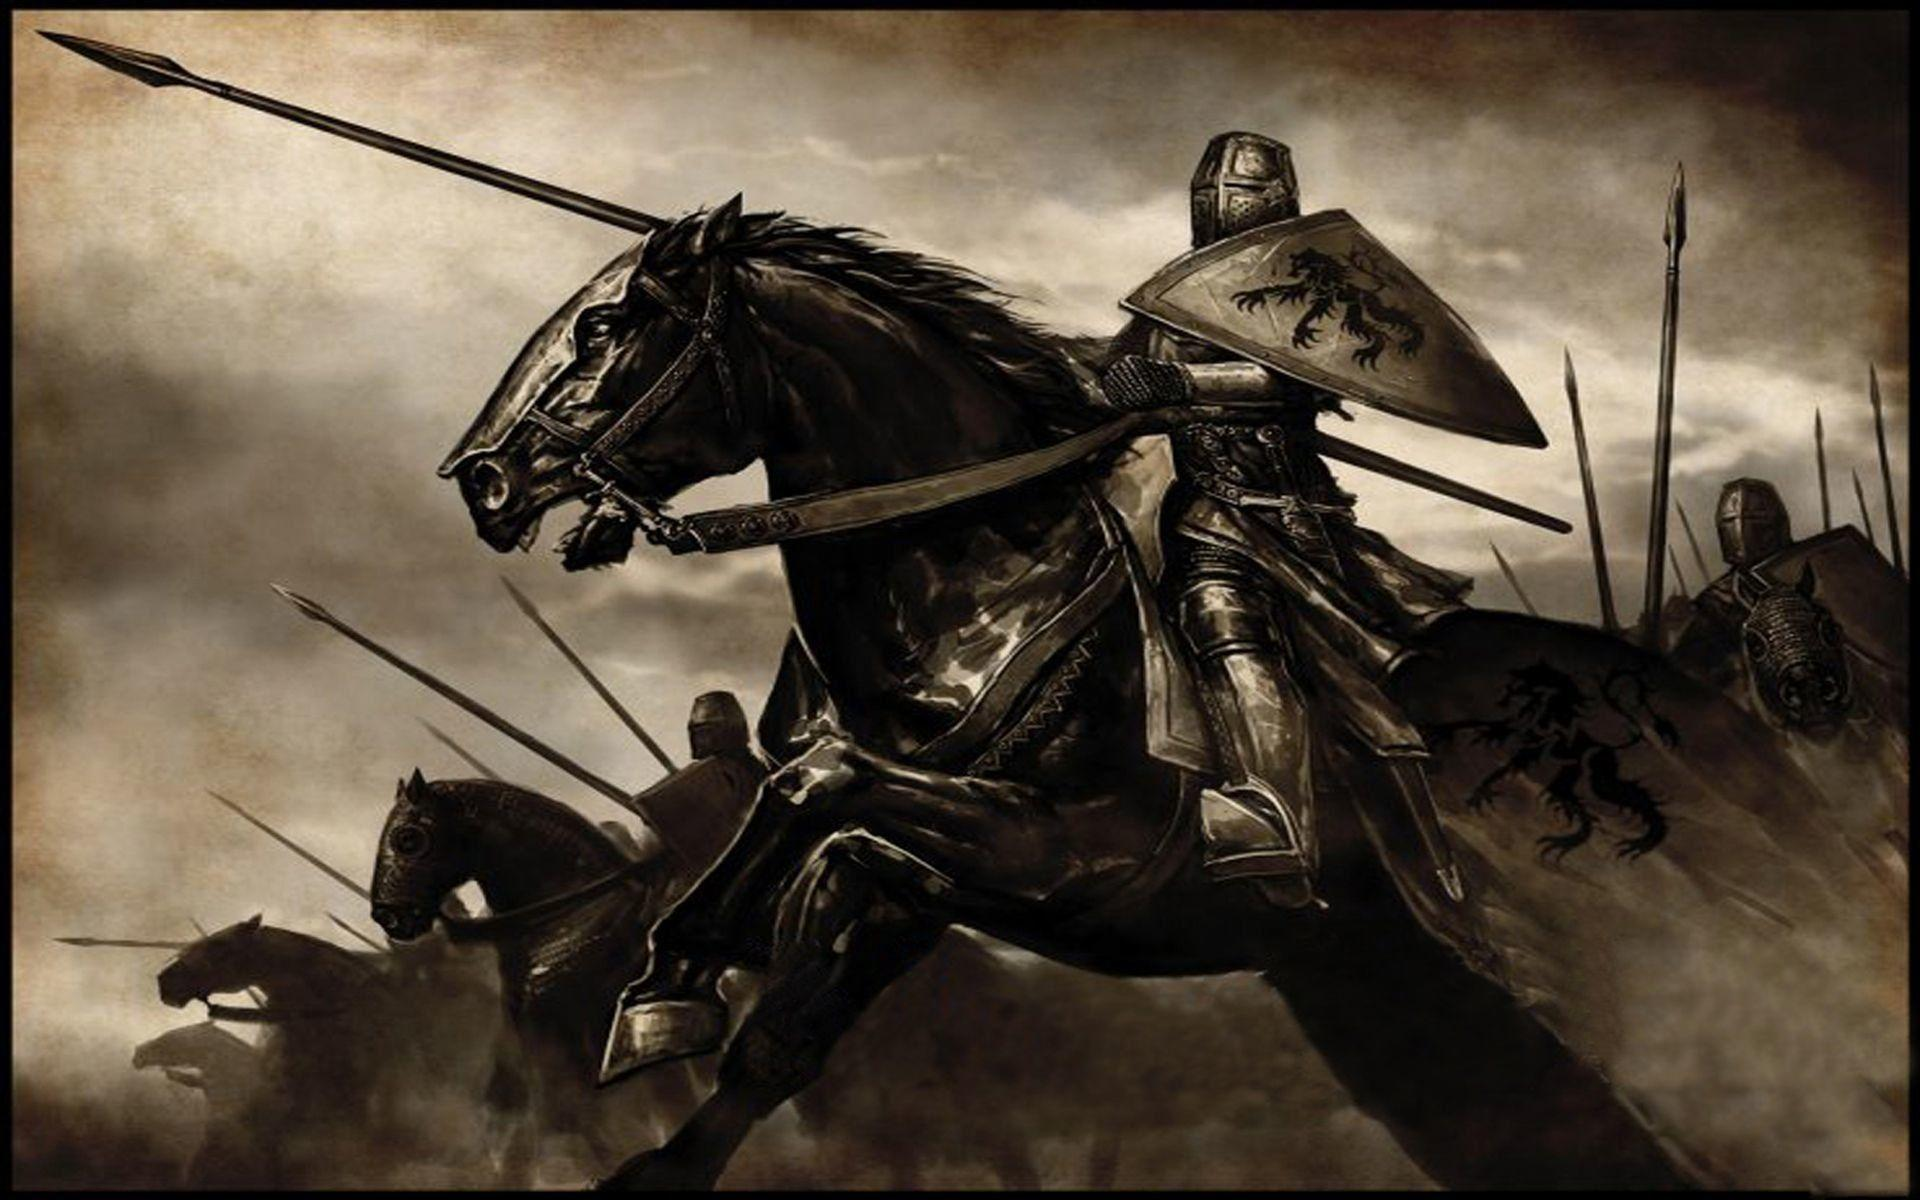 Mount And Blade Wallpapers - Wallpaper Cave